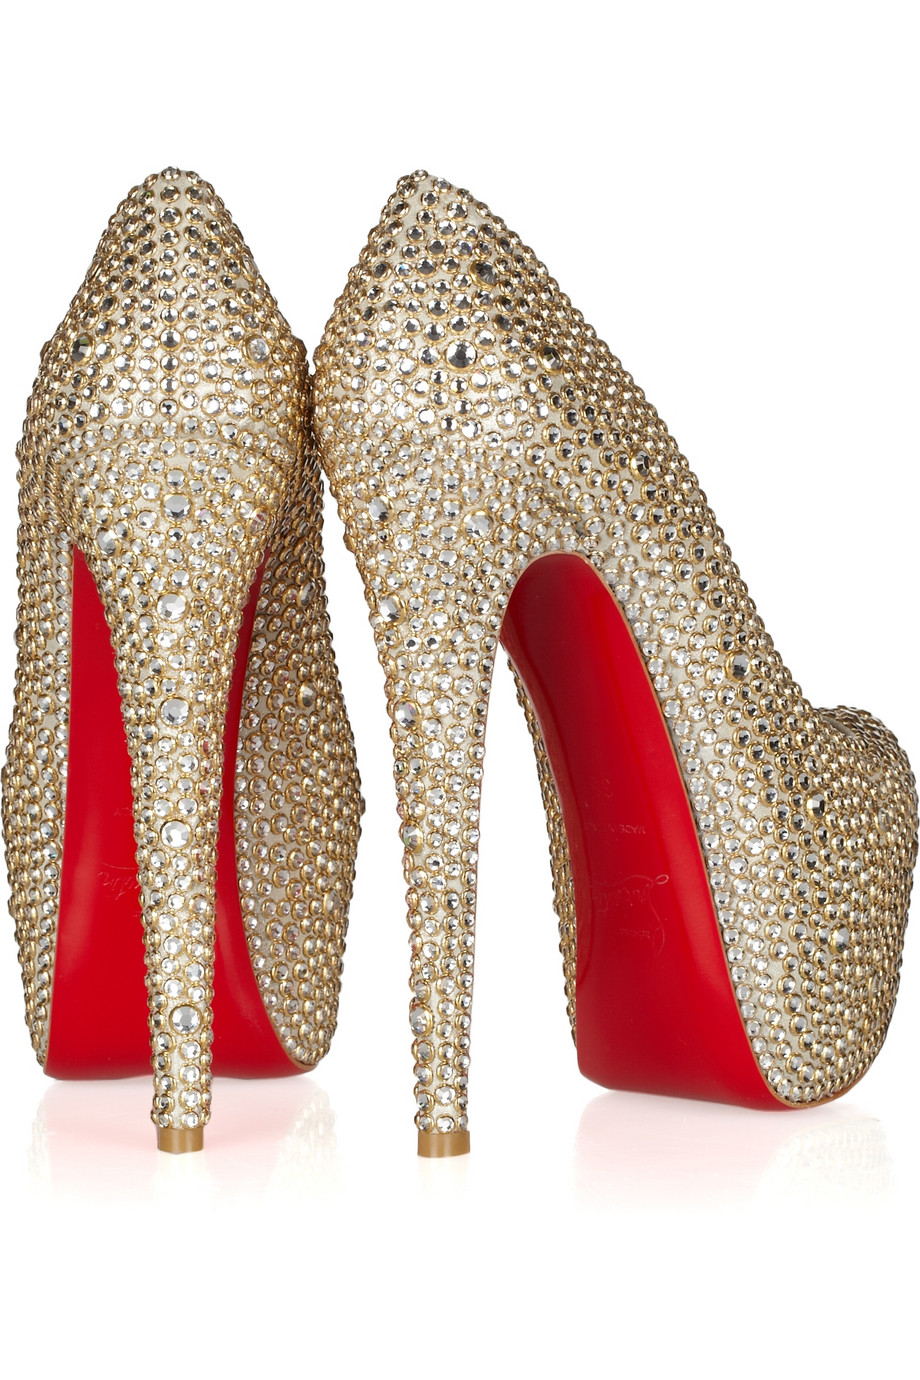 23448f1584e What is the Colour Code of Christian Louboutin Red Soles